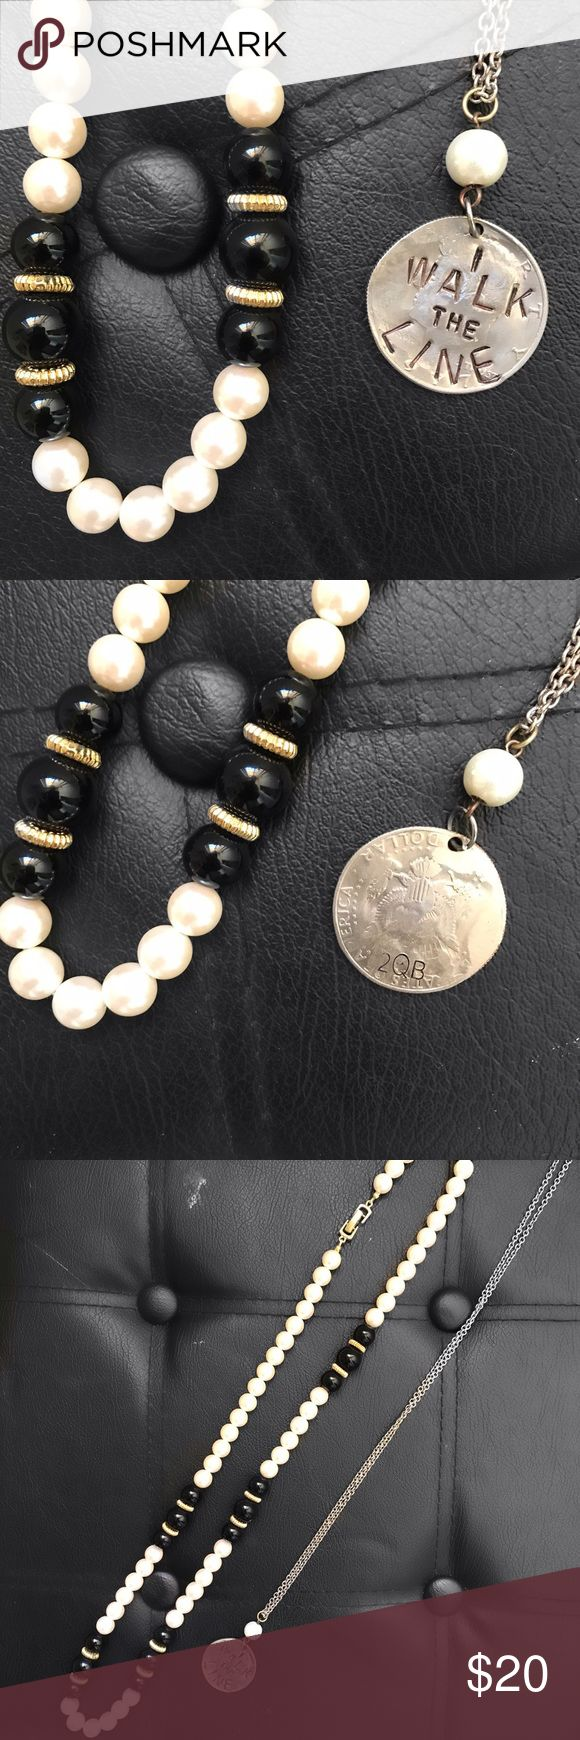 Two necklaces ❤️ A faux pearl necklace and a Johnny cash inspired coin necklace  the learn necklace lands just below the collar bone and the coin necklace lands a little lower than that ♥️ open to offers no trades. Jewelry Necklaces